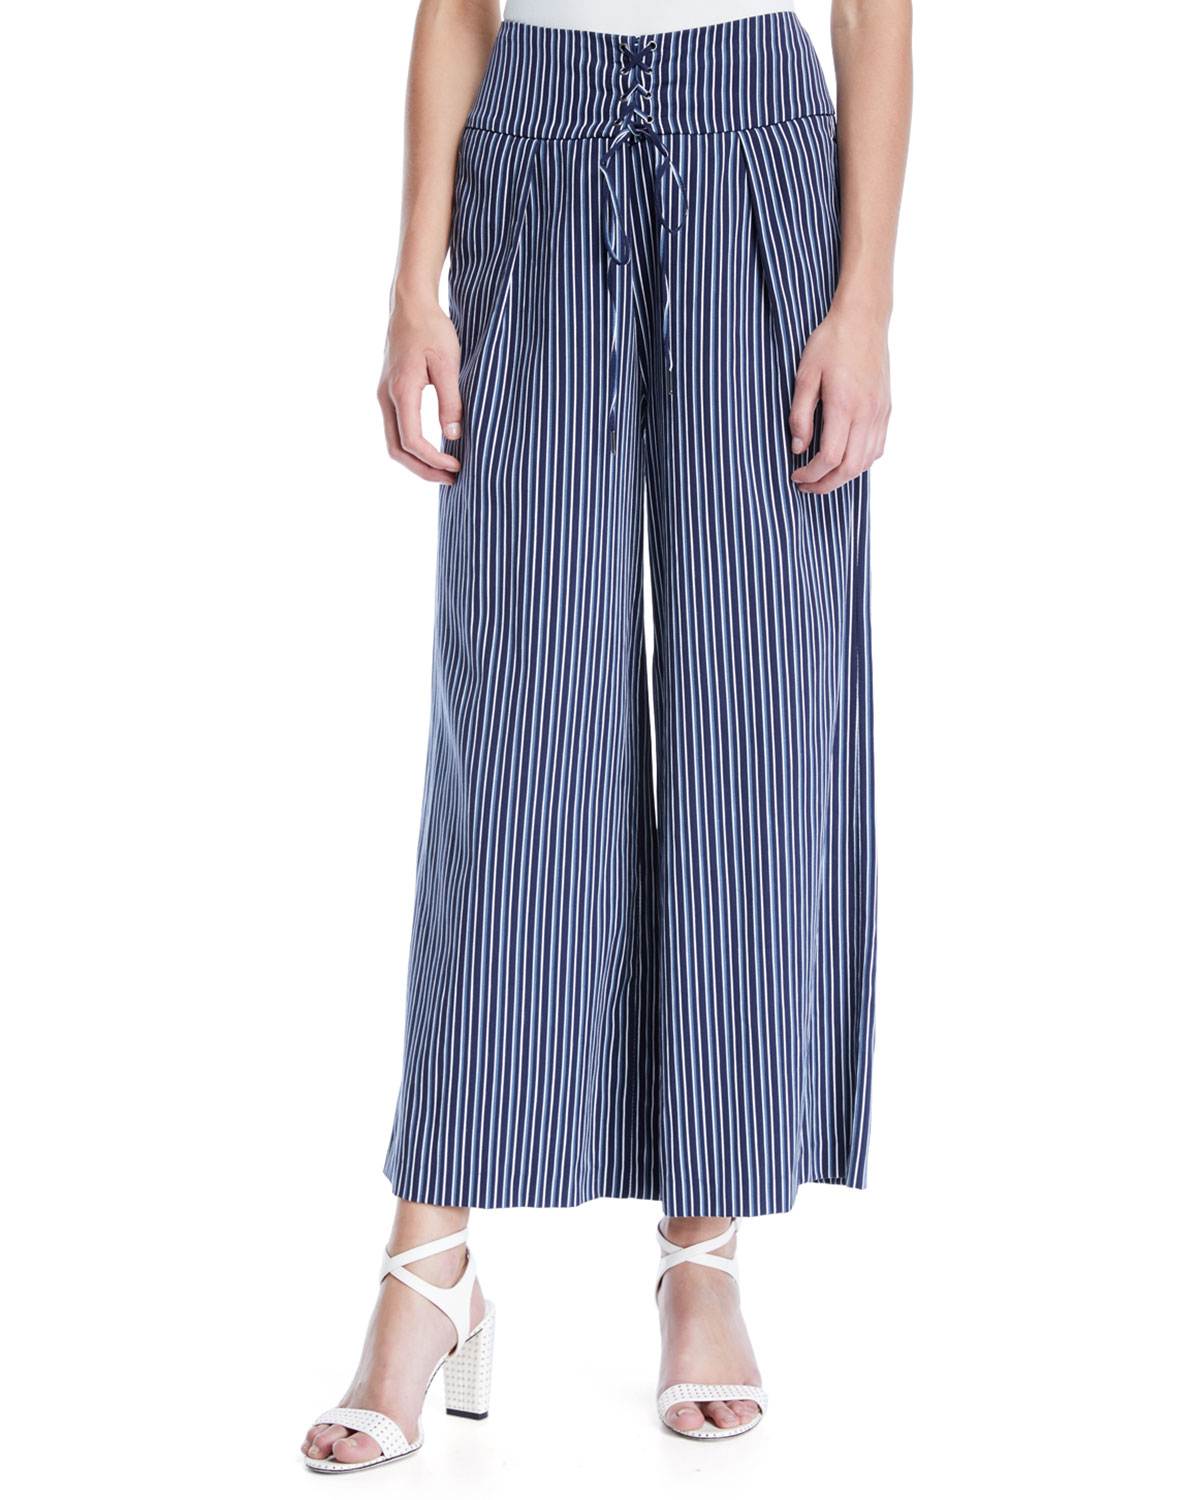 Charisma Striped Wide-Leg Pants